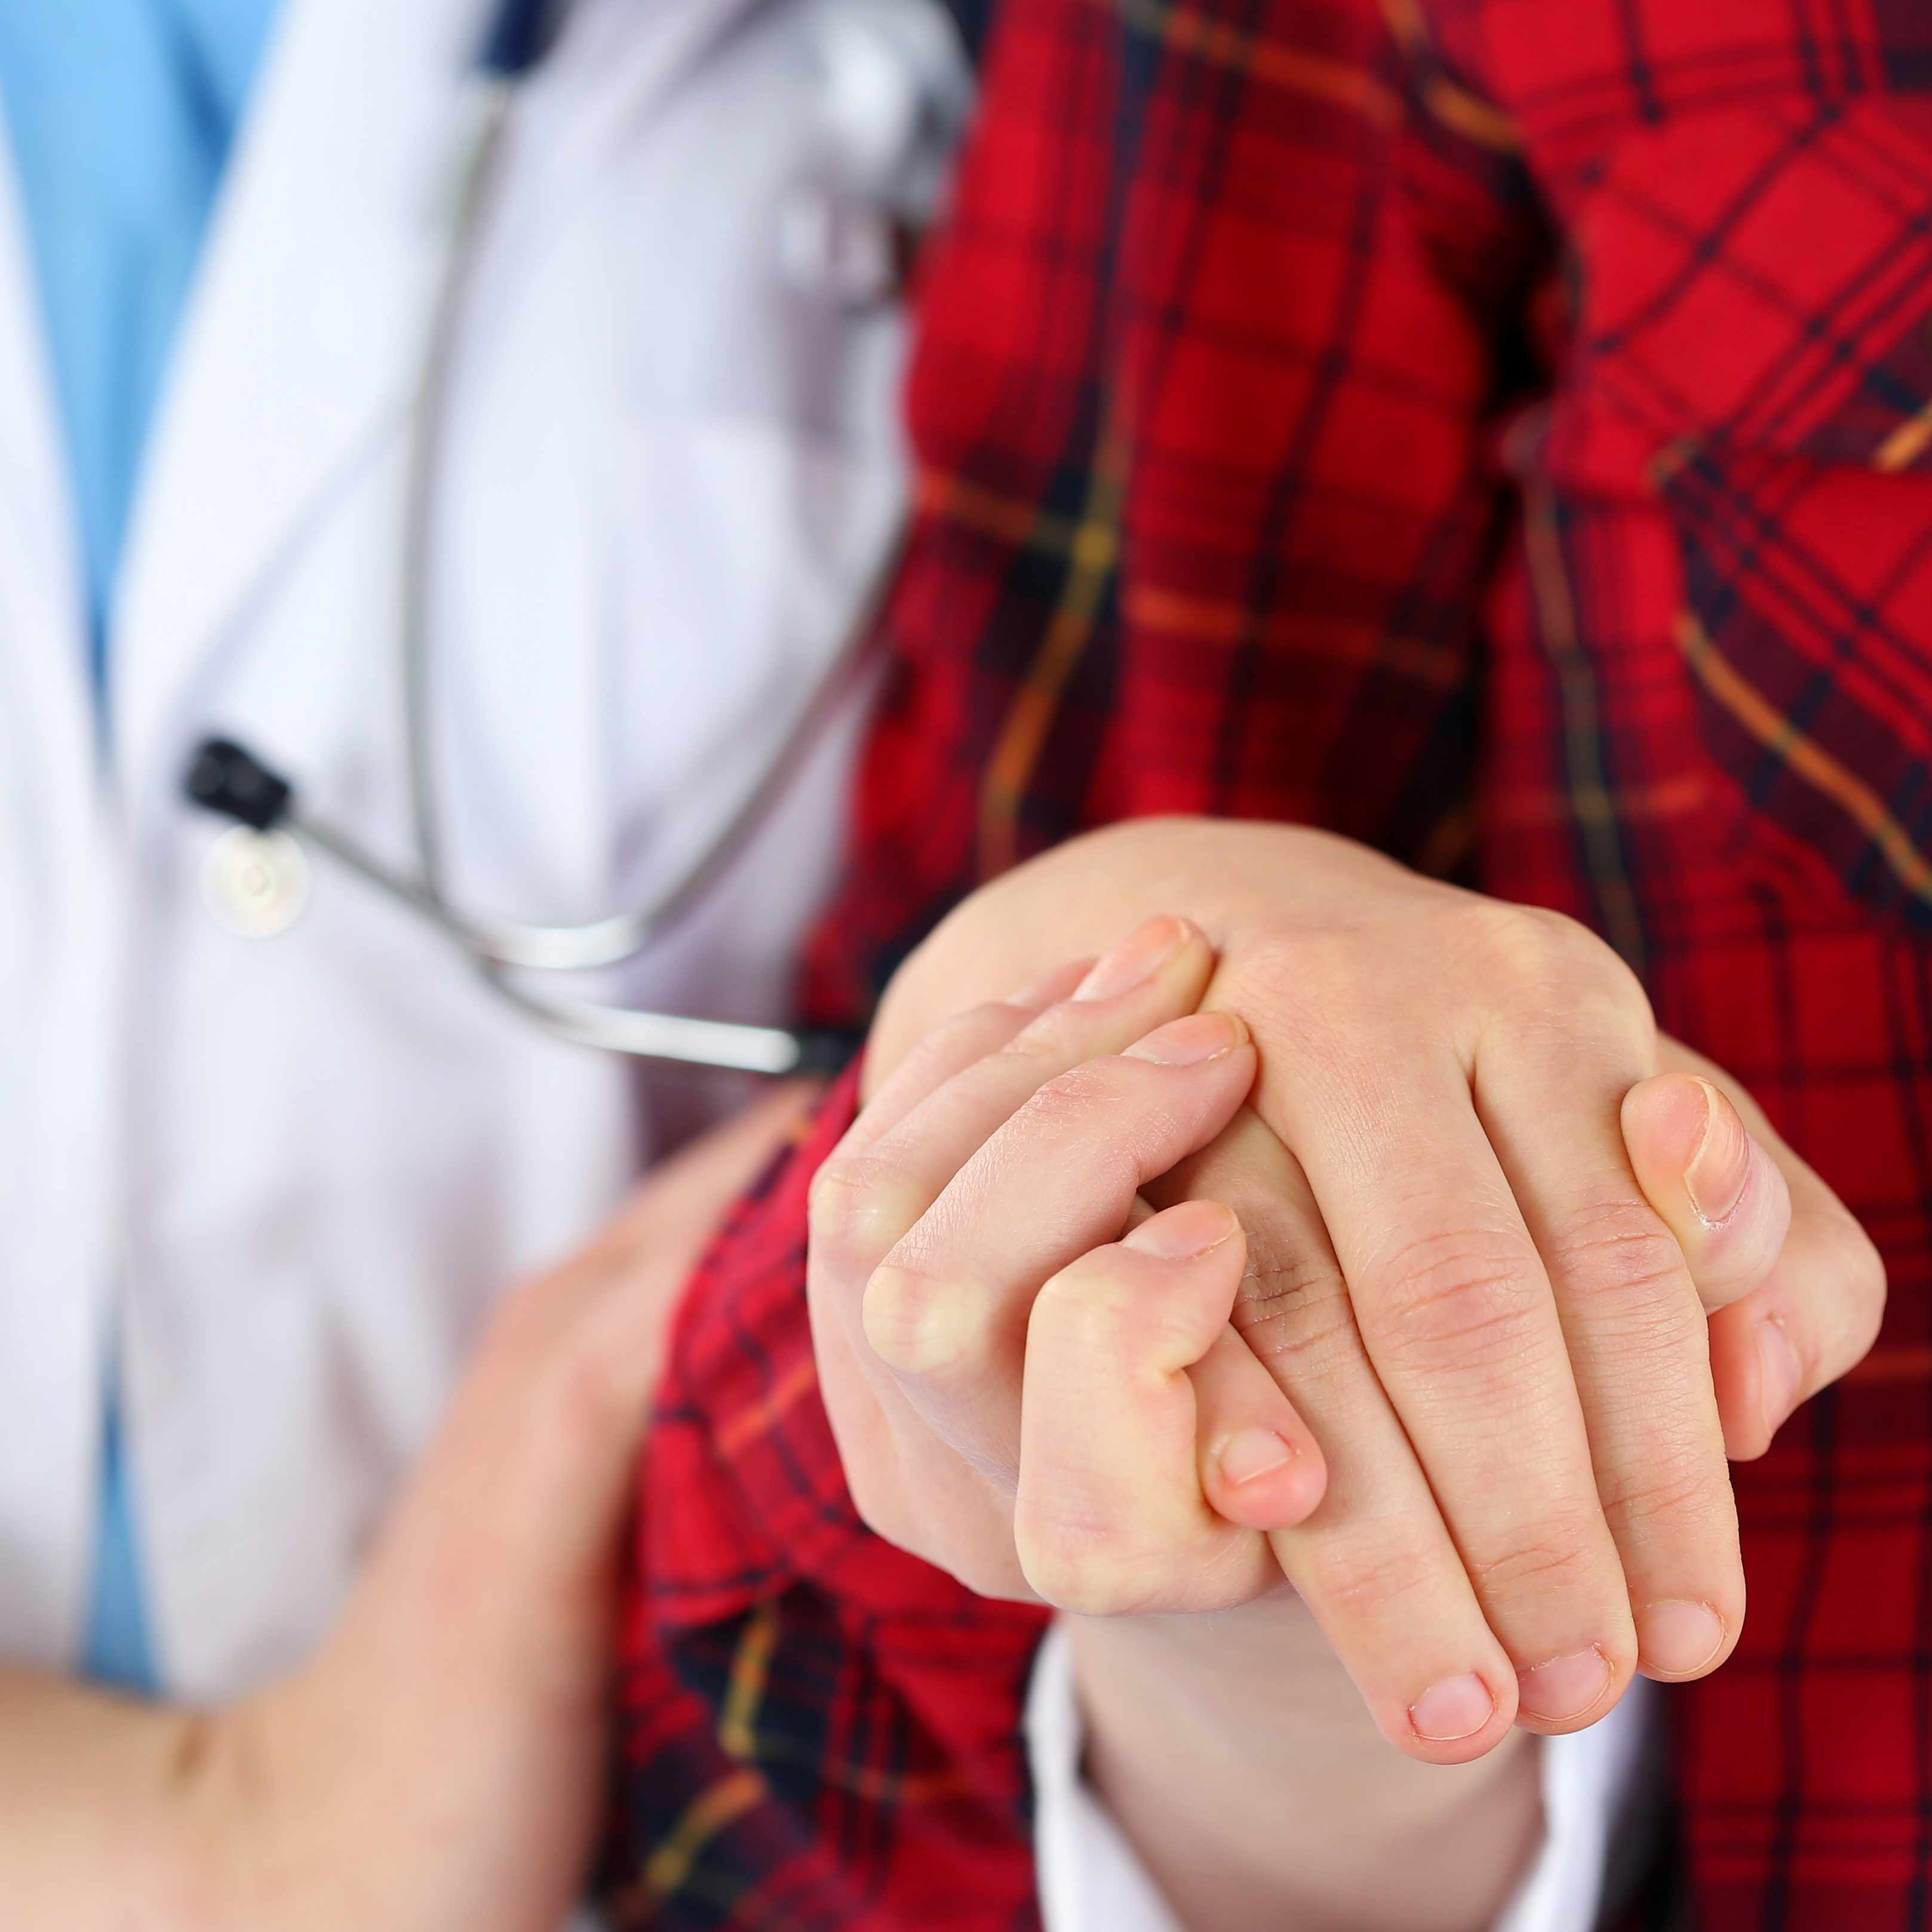 a medical staff member, doctor or nurse, holding patient's hand and helping the person walk